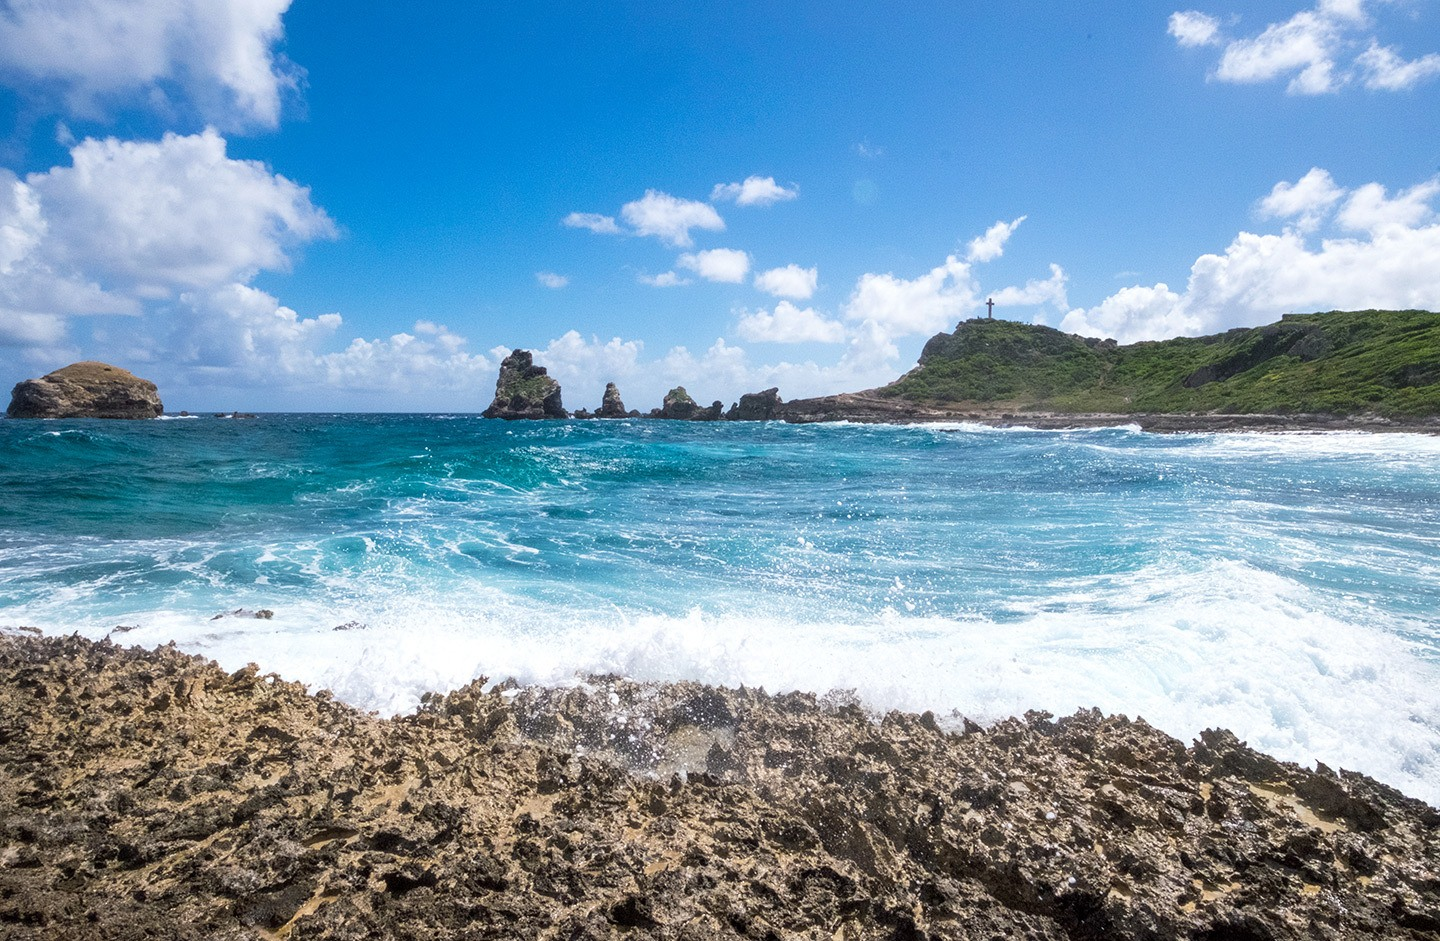 Pointe des Châteaux in Guadeloupe, French Caribbean